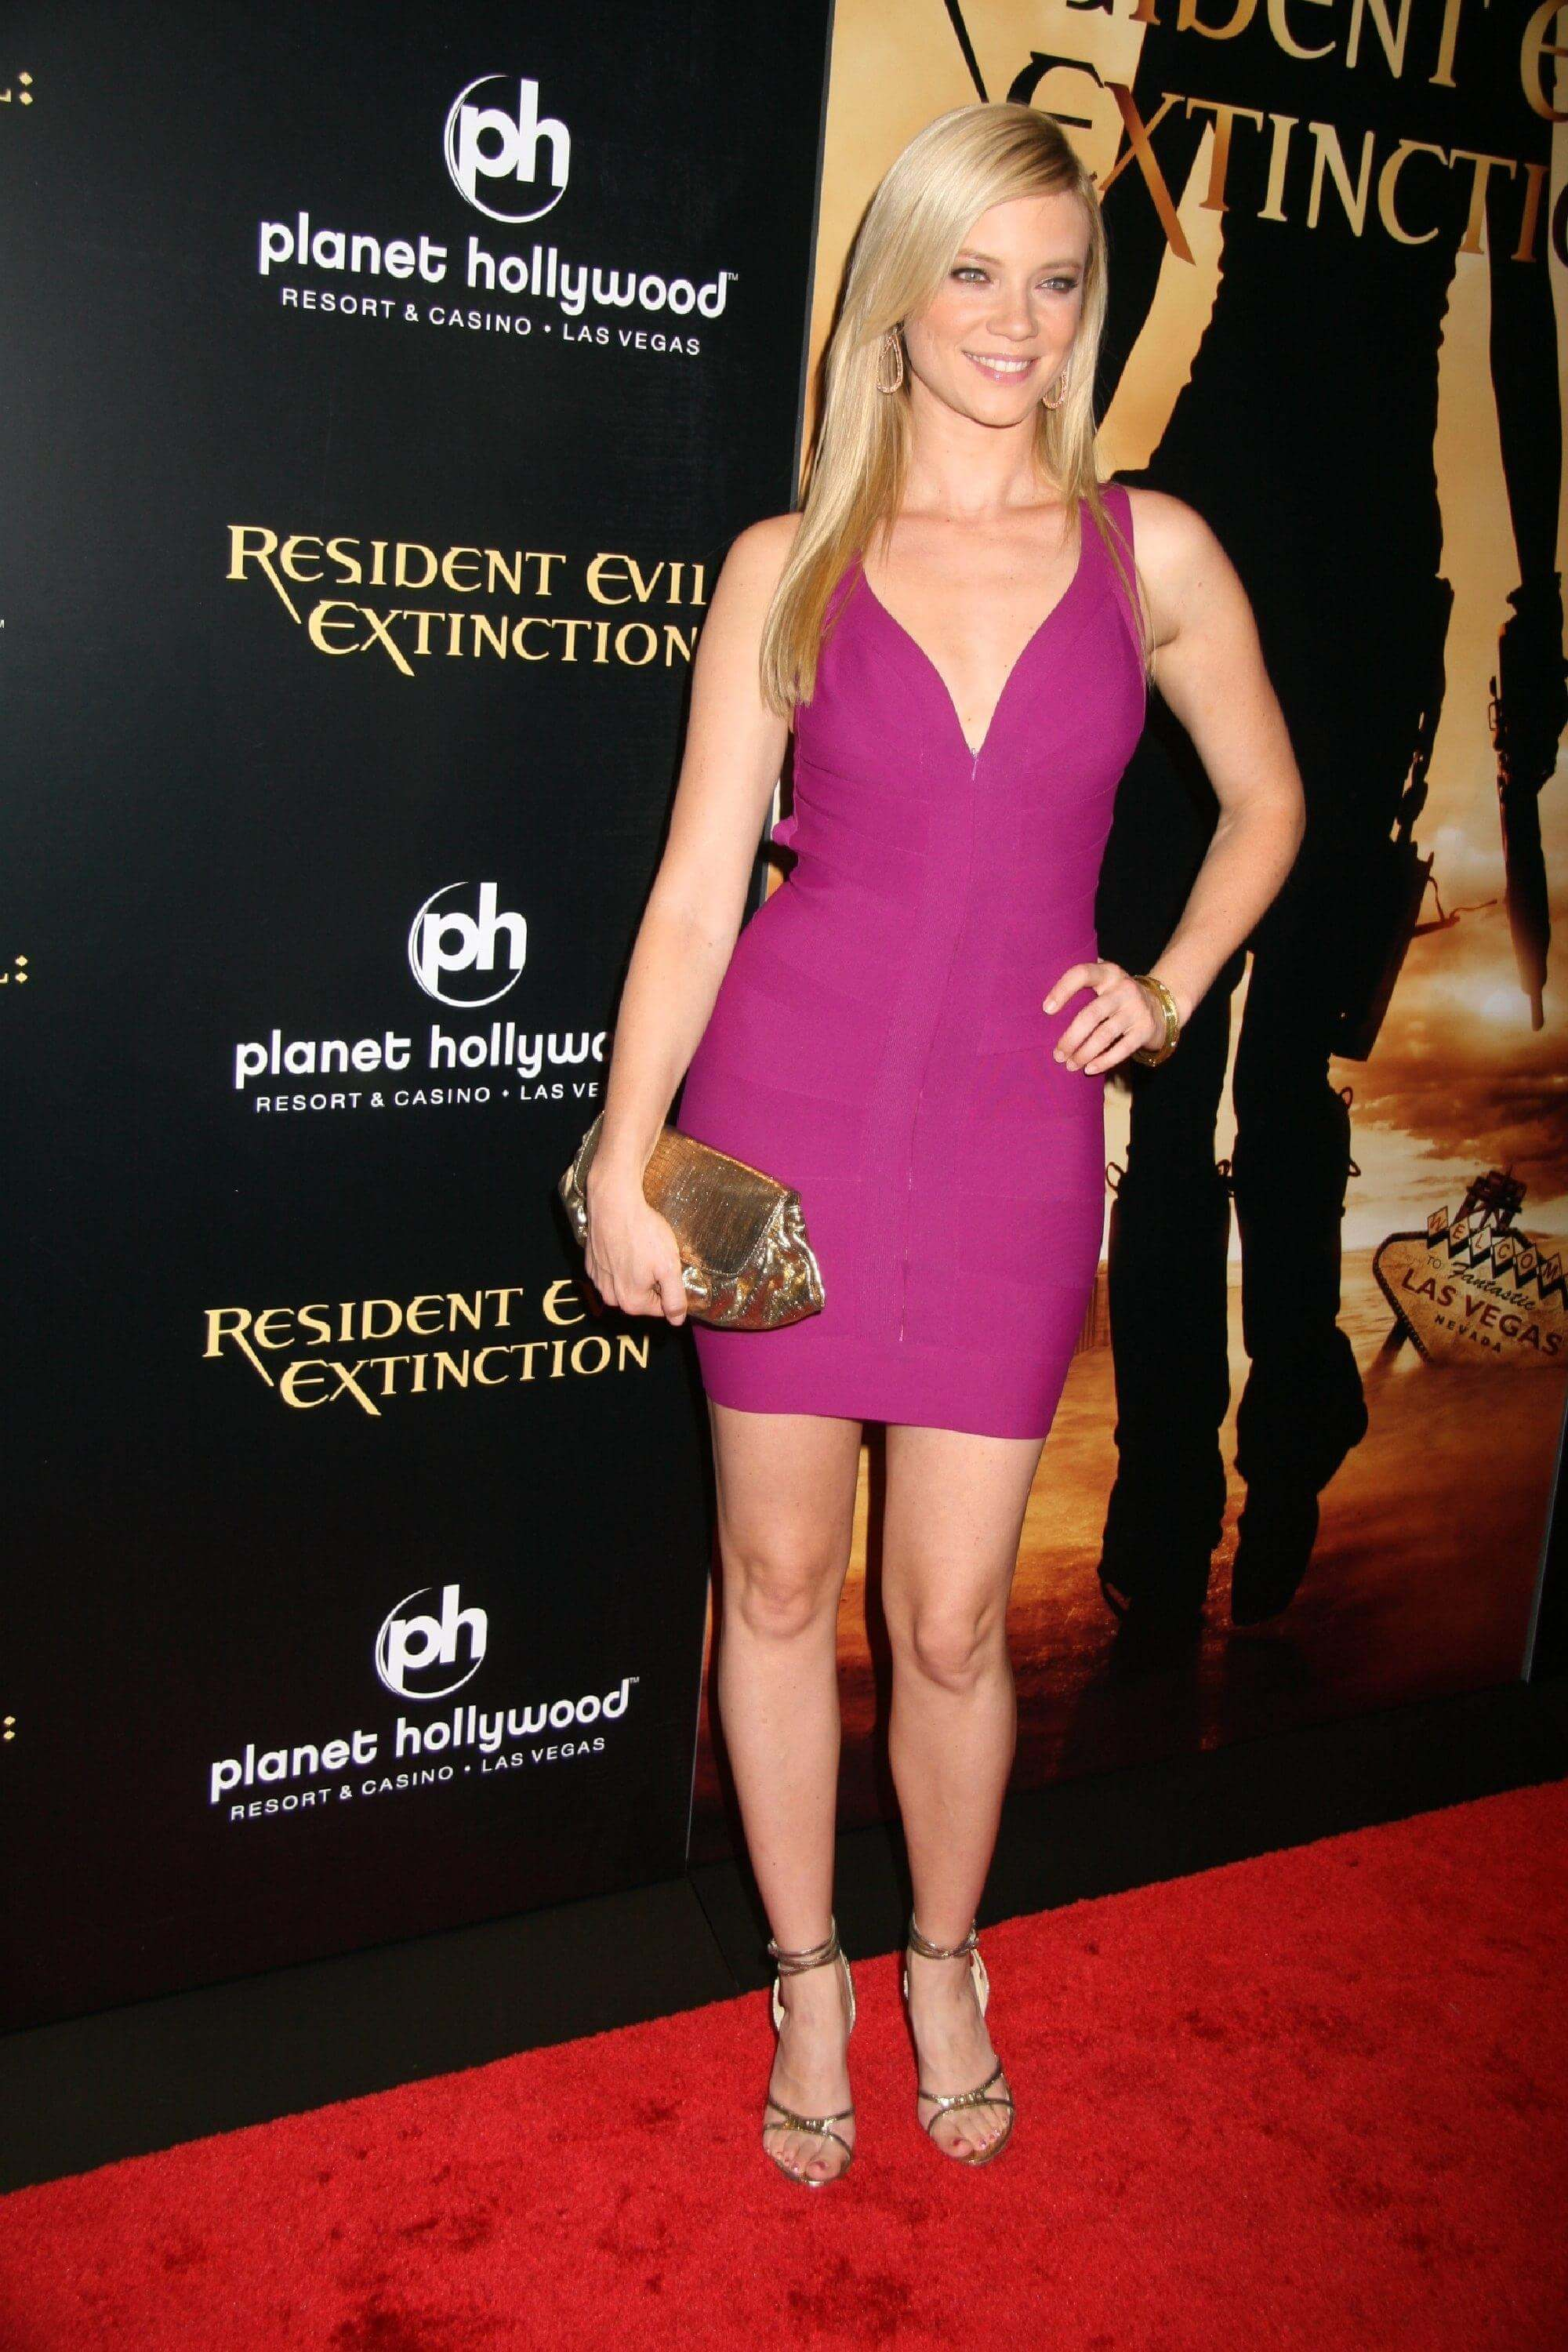 Amy Smart Hot Images 49 sexy amy smart feet pictures will make you go crazy for